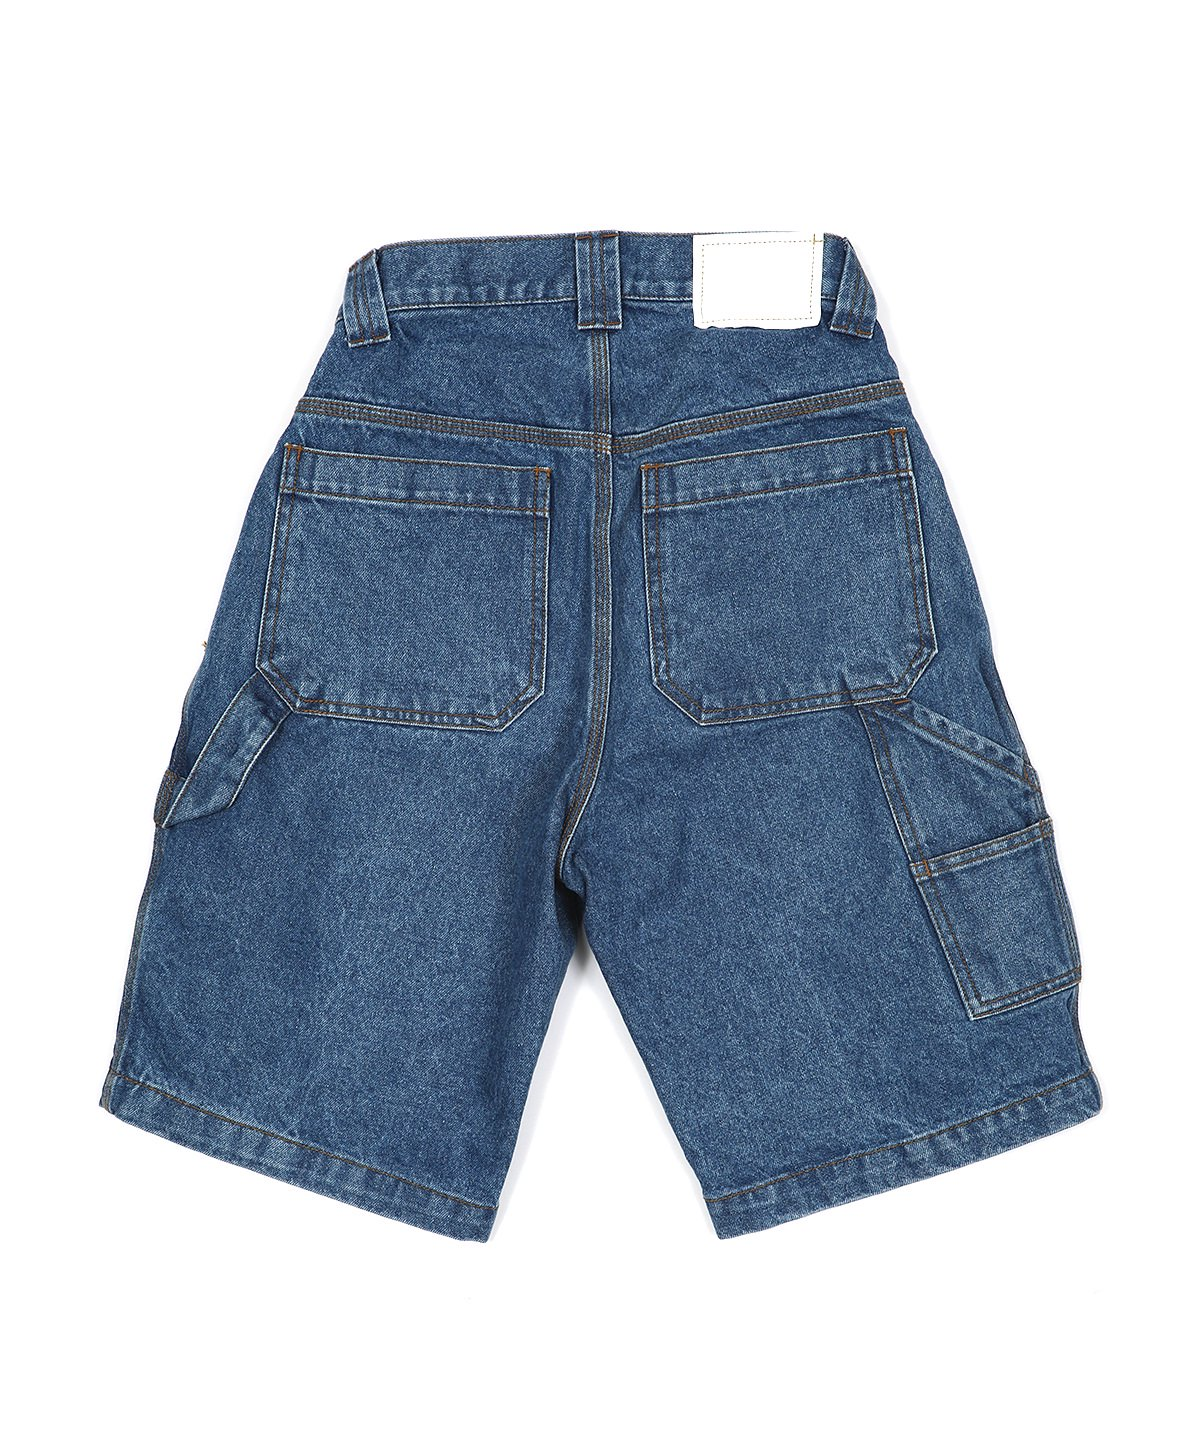 YOUNG TEXAS SHORTS